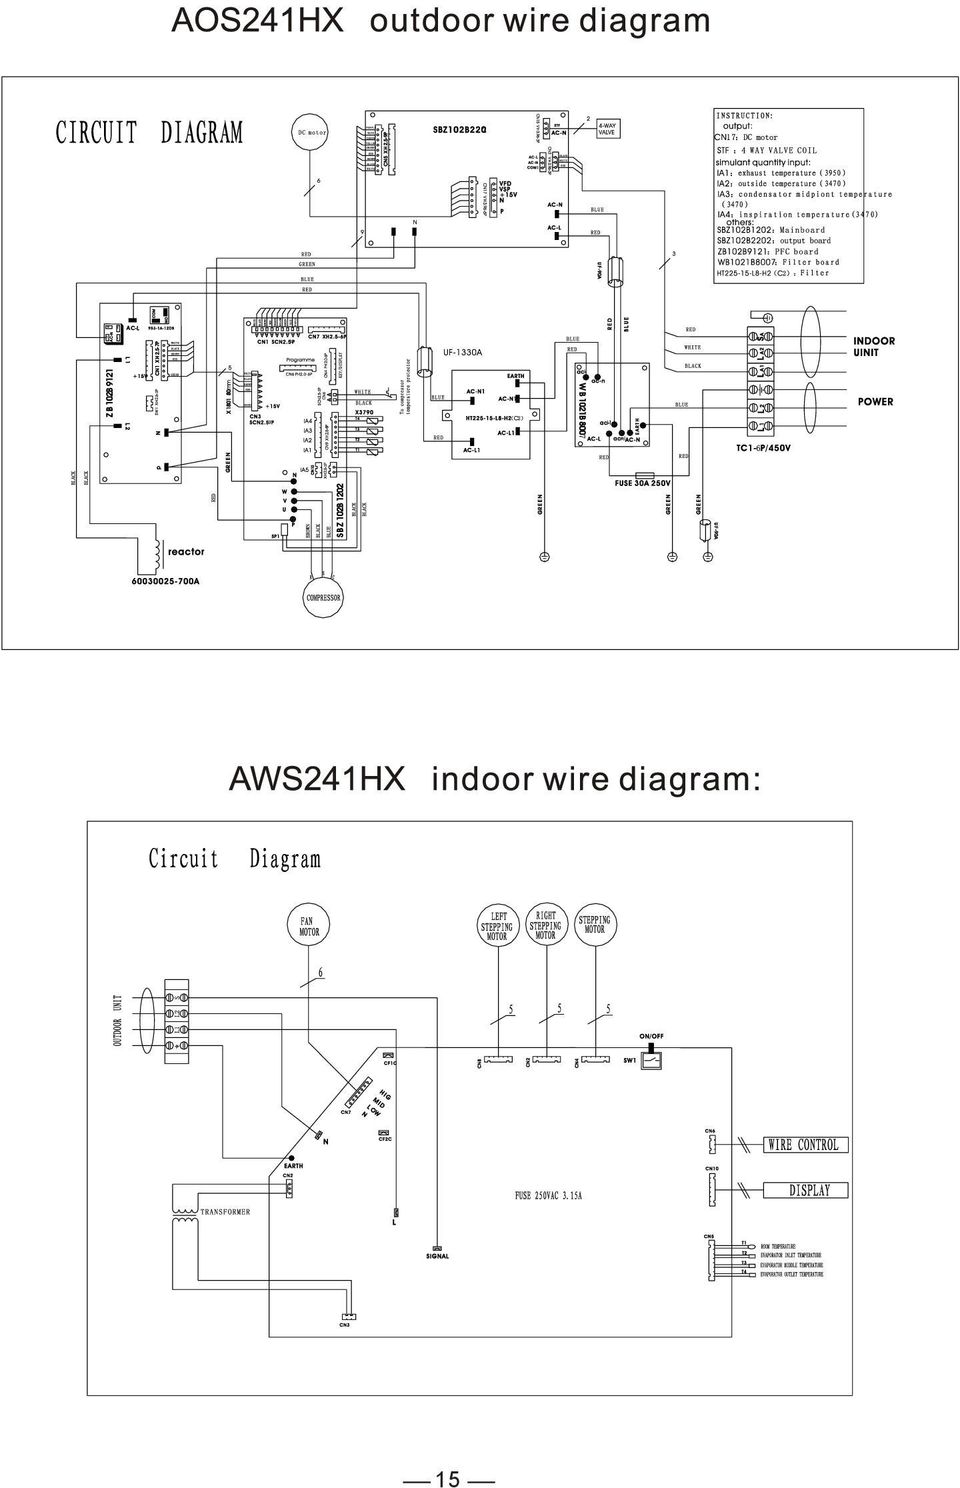 Srcool12k Portable Ac Unit Wiring Diagram Excellent Electrical Library Rh 33 Skriptoase De Thermostat For